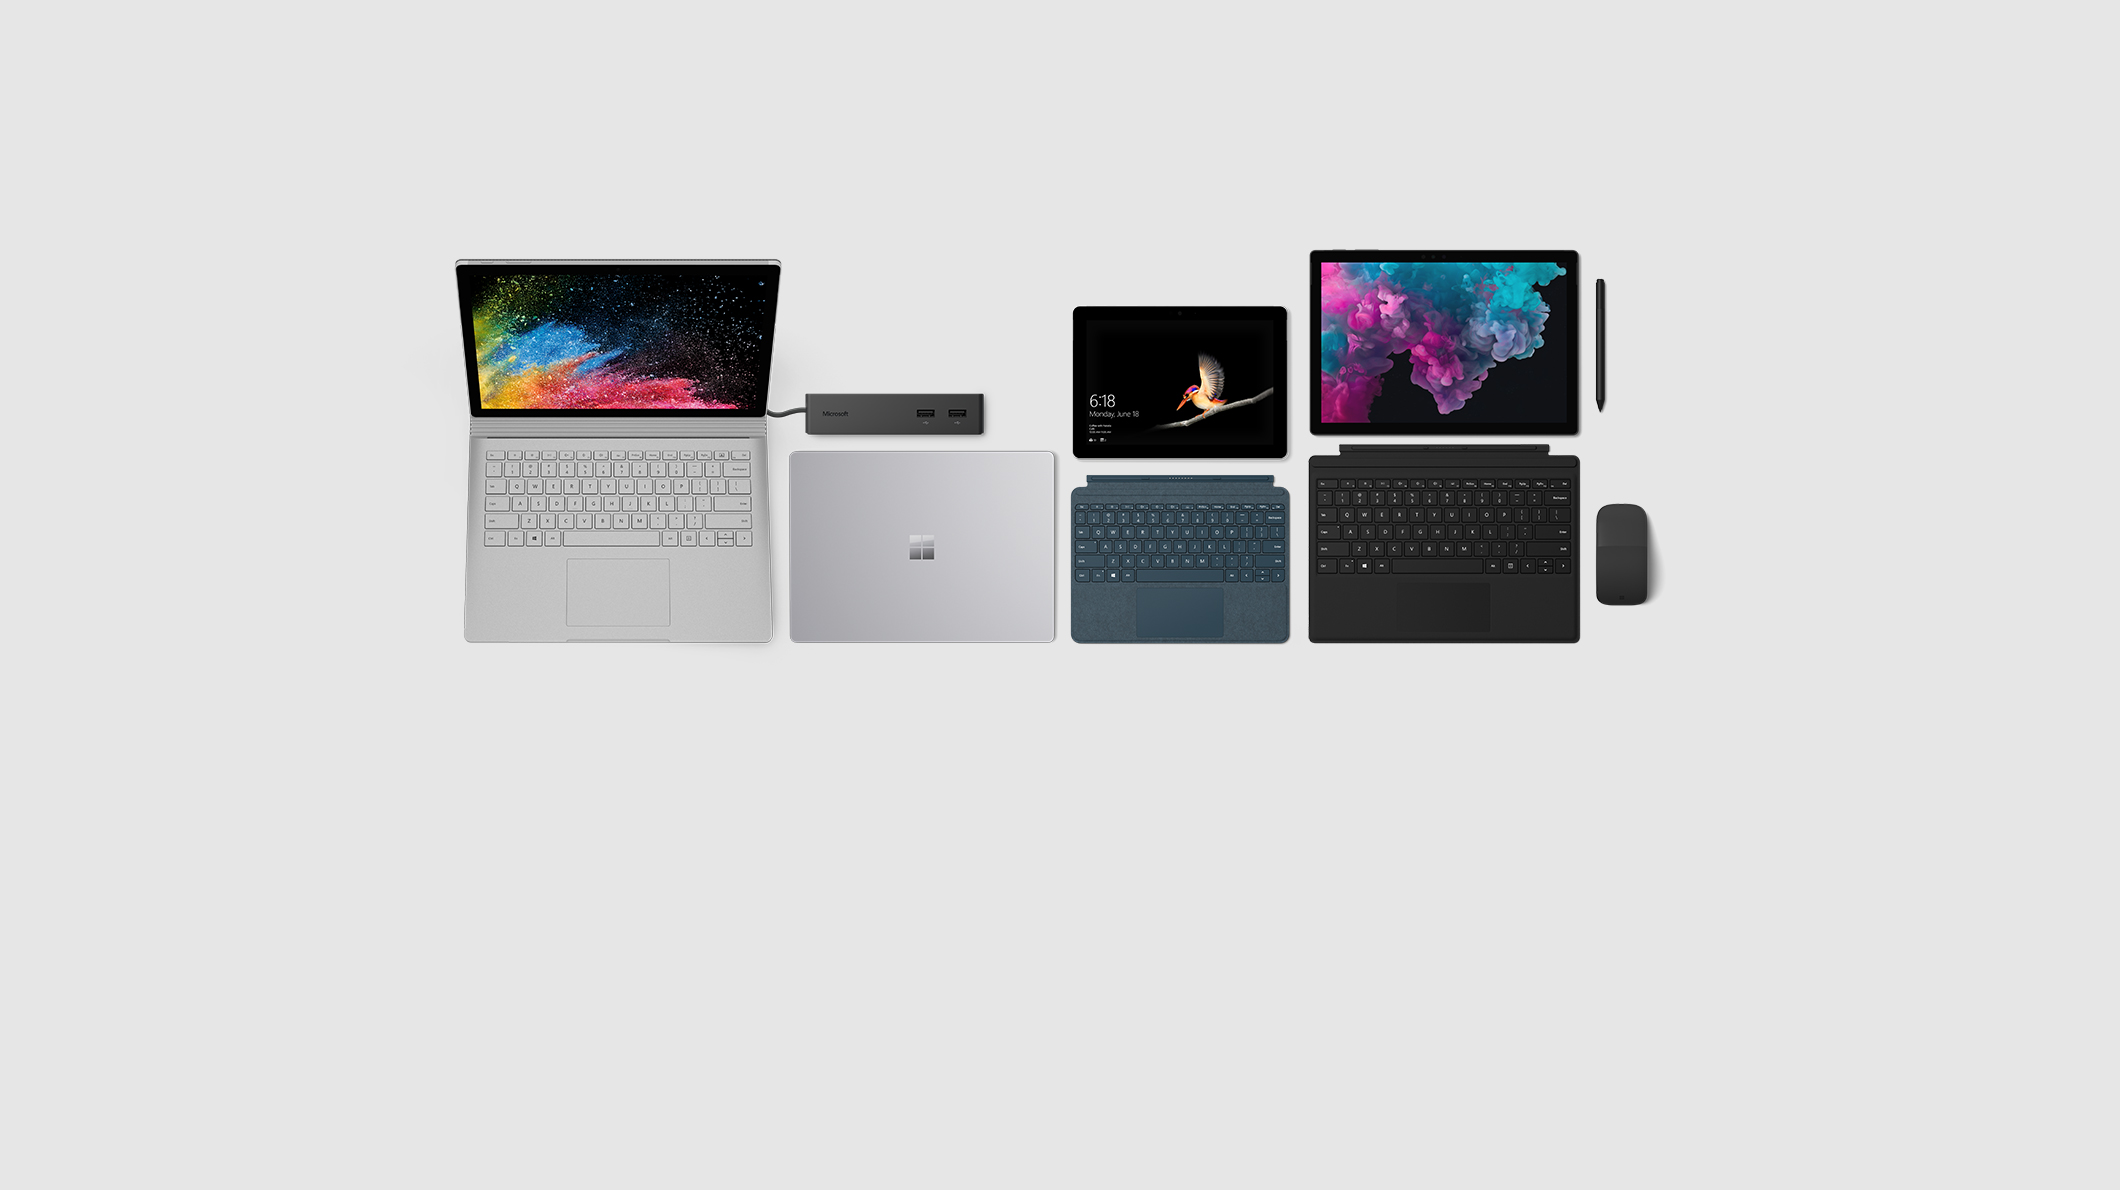 Surface Book 2, Surface Laptop 2, Surface Go, Surface Pro 6